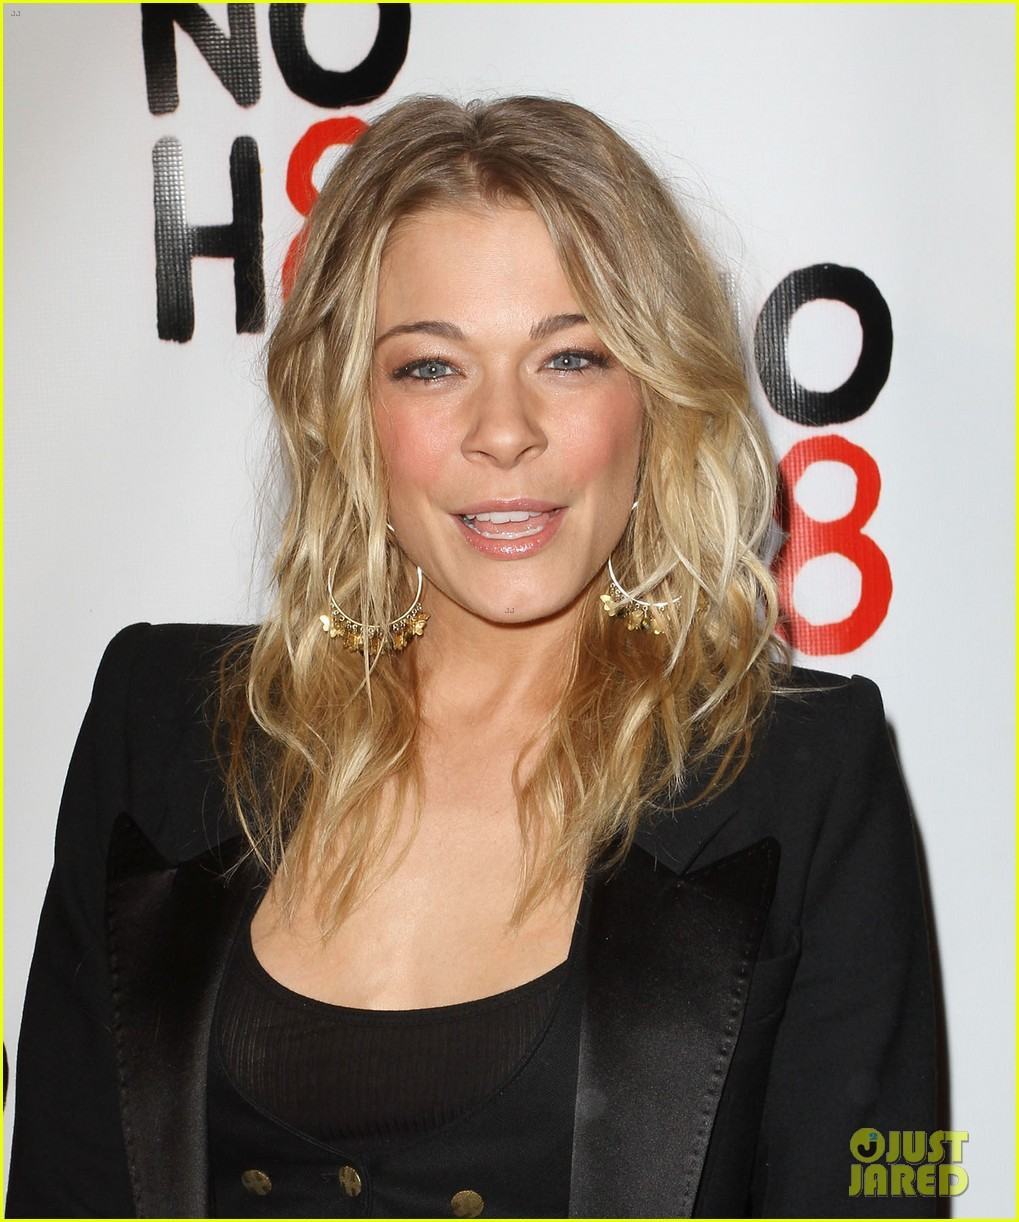 leann rimes noh8 campaigns 3 year anniversary celebration 08